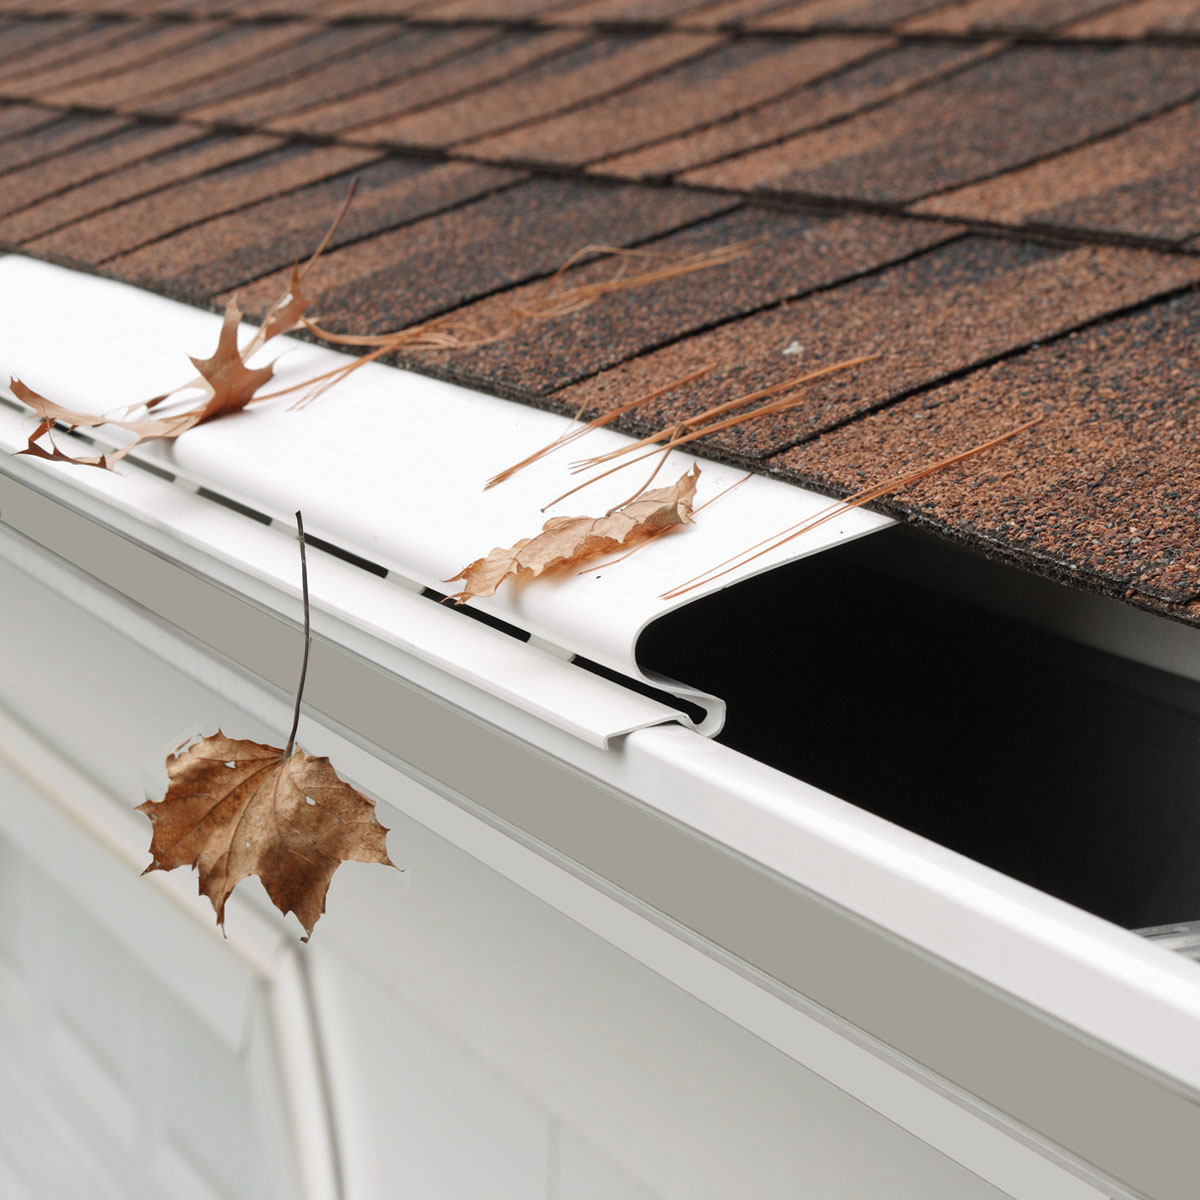 Functioning Gutter Guards